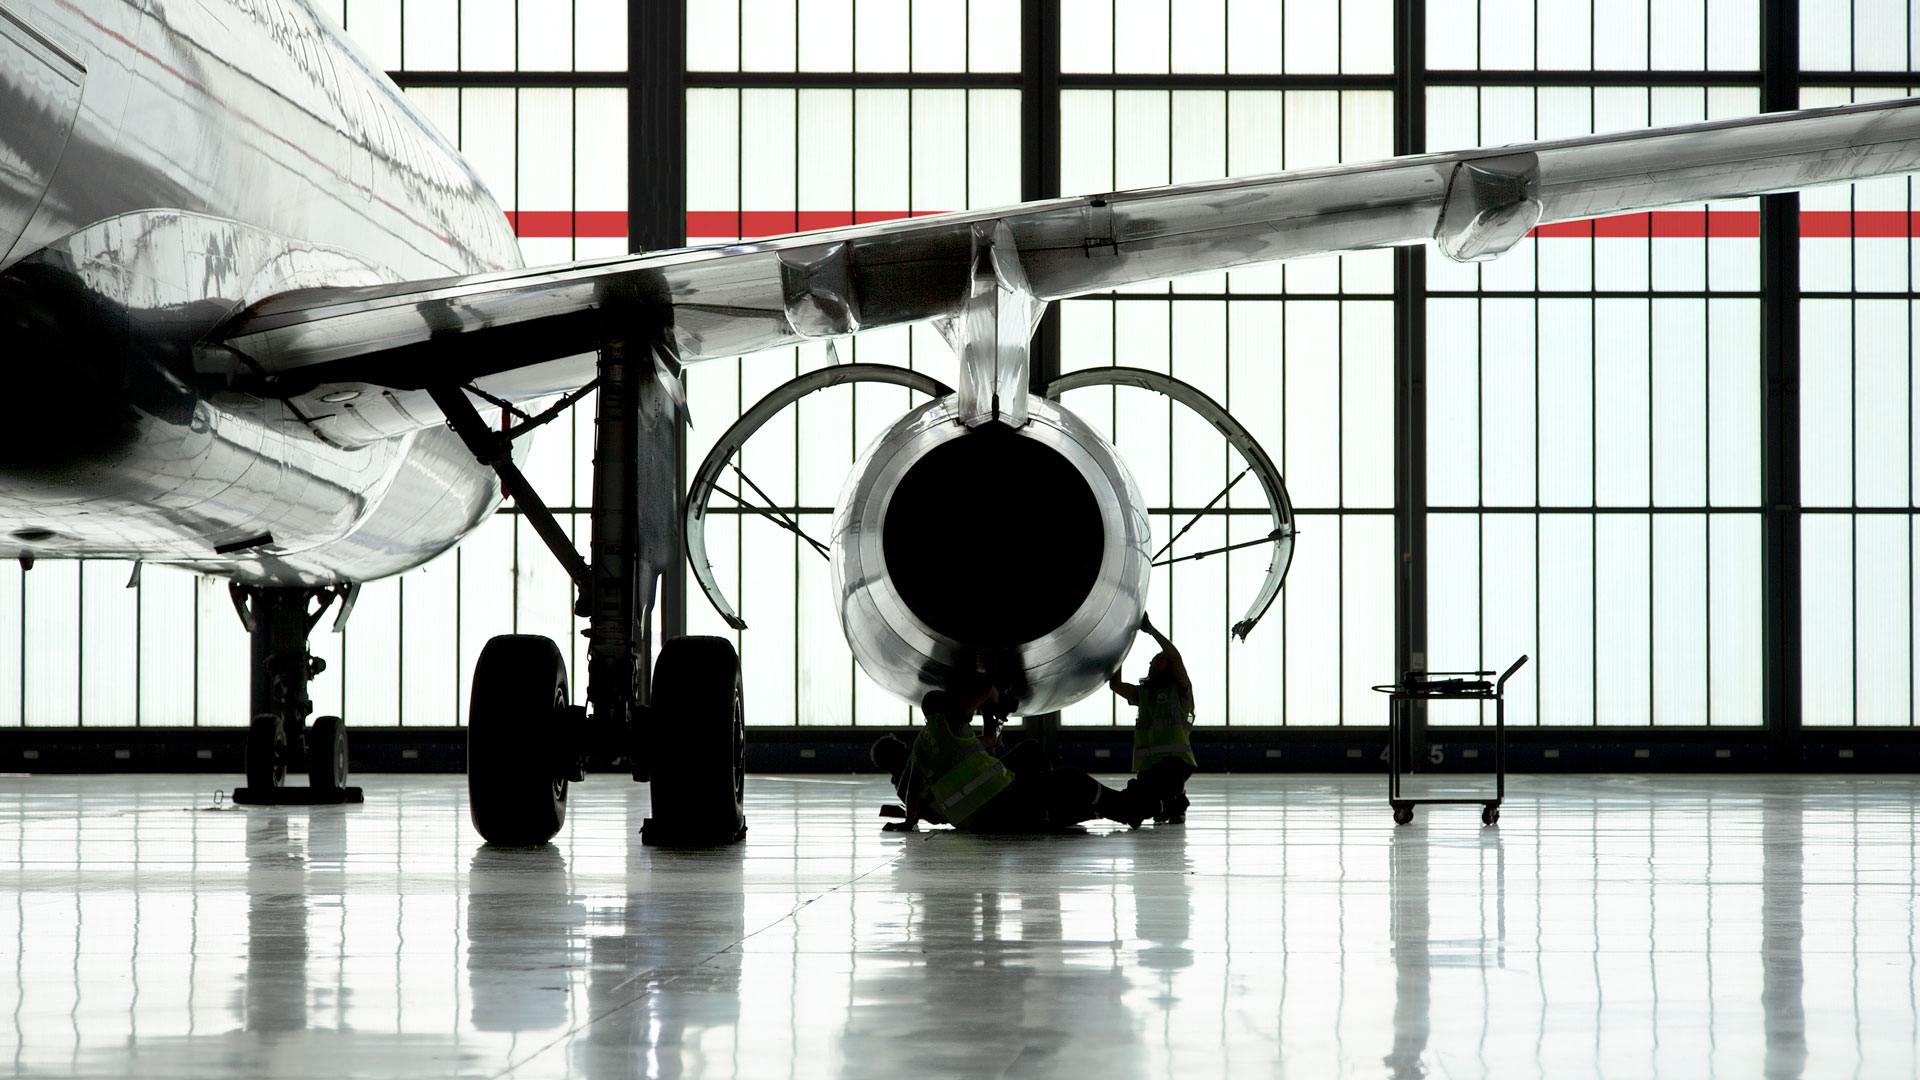 Aircraft Storage: Here is how you can expedite the re-entry into service process